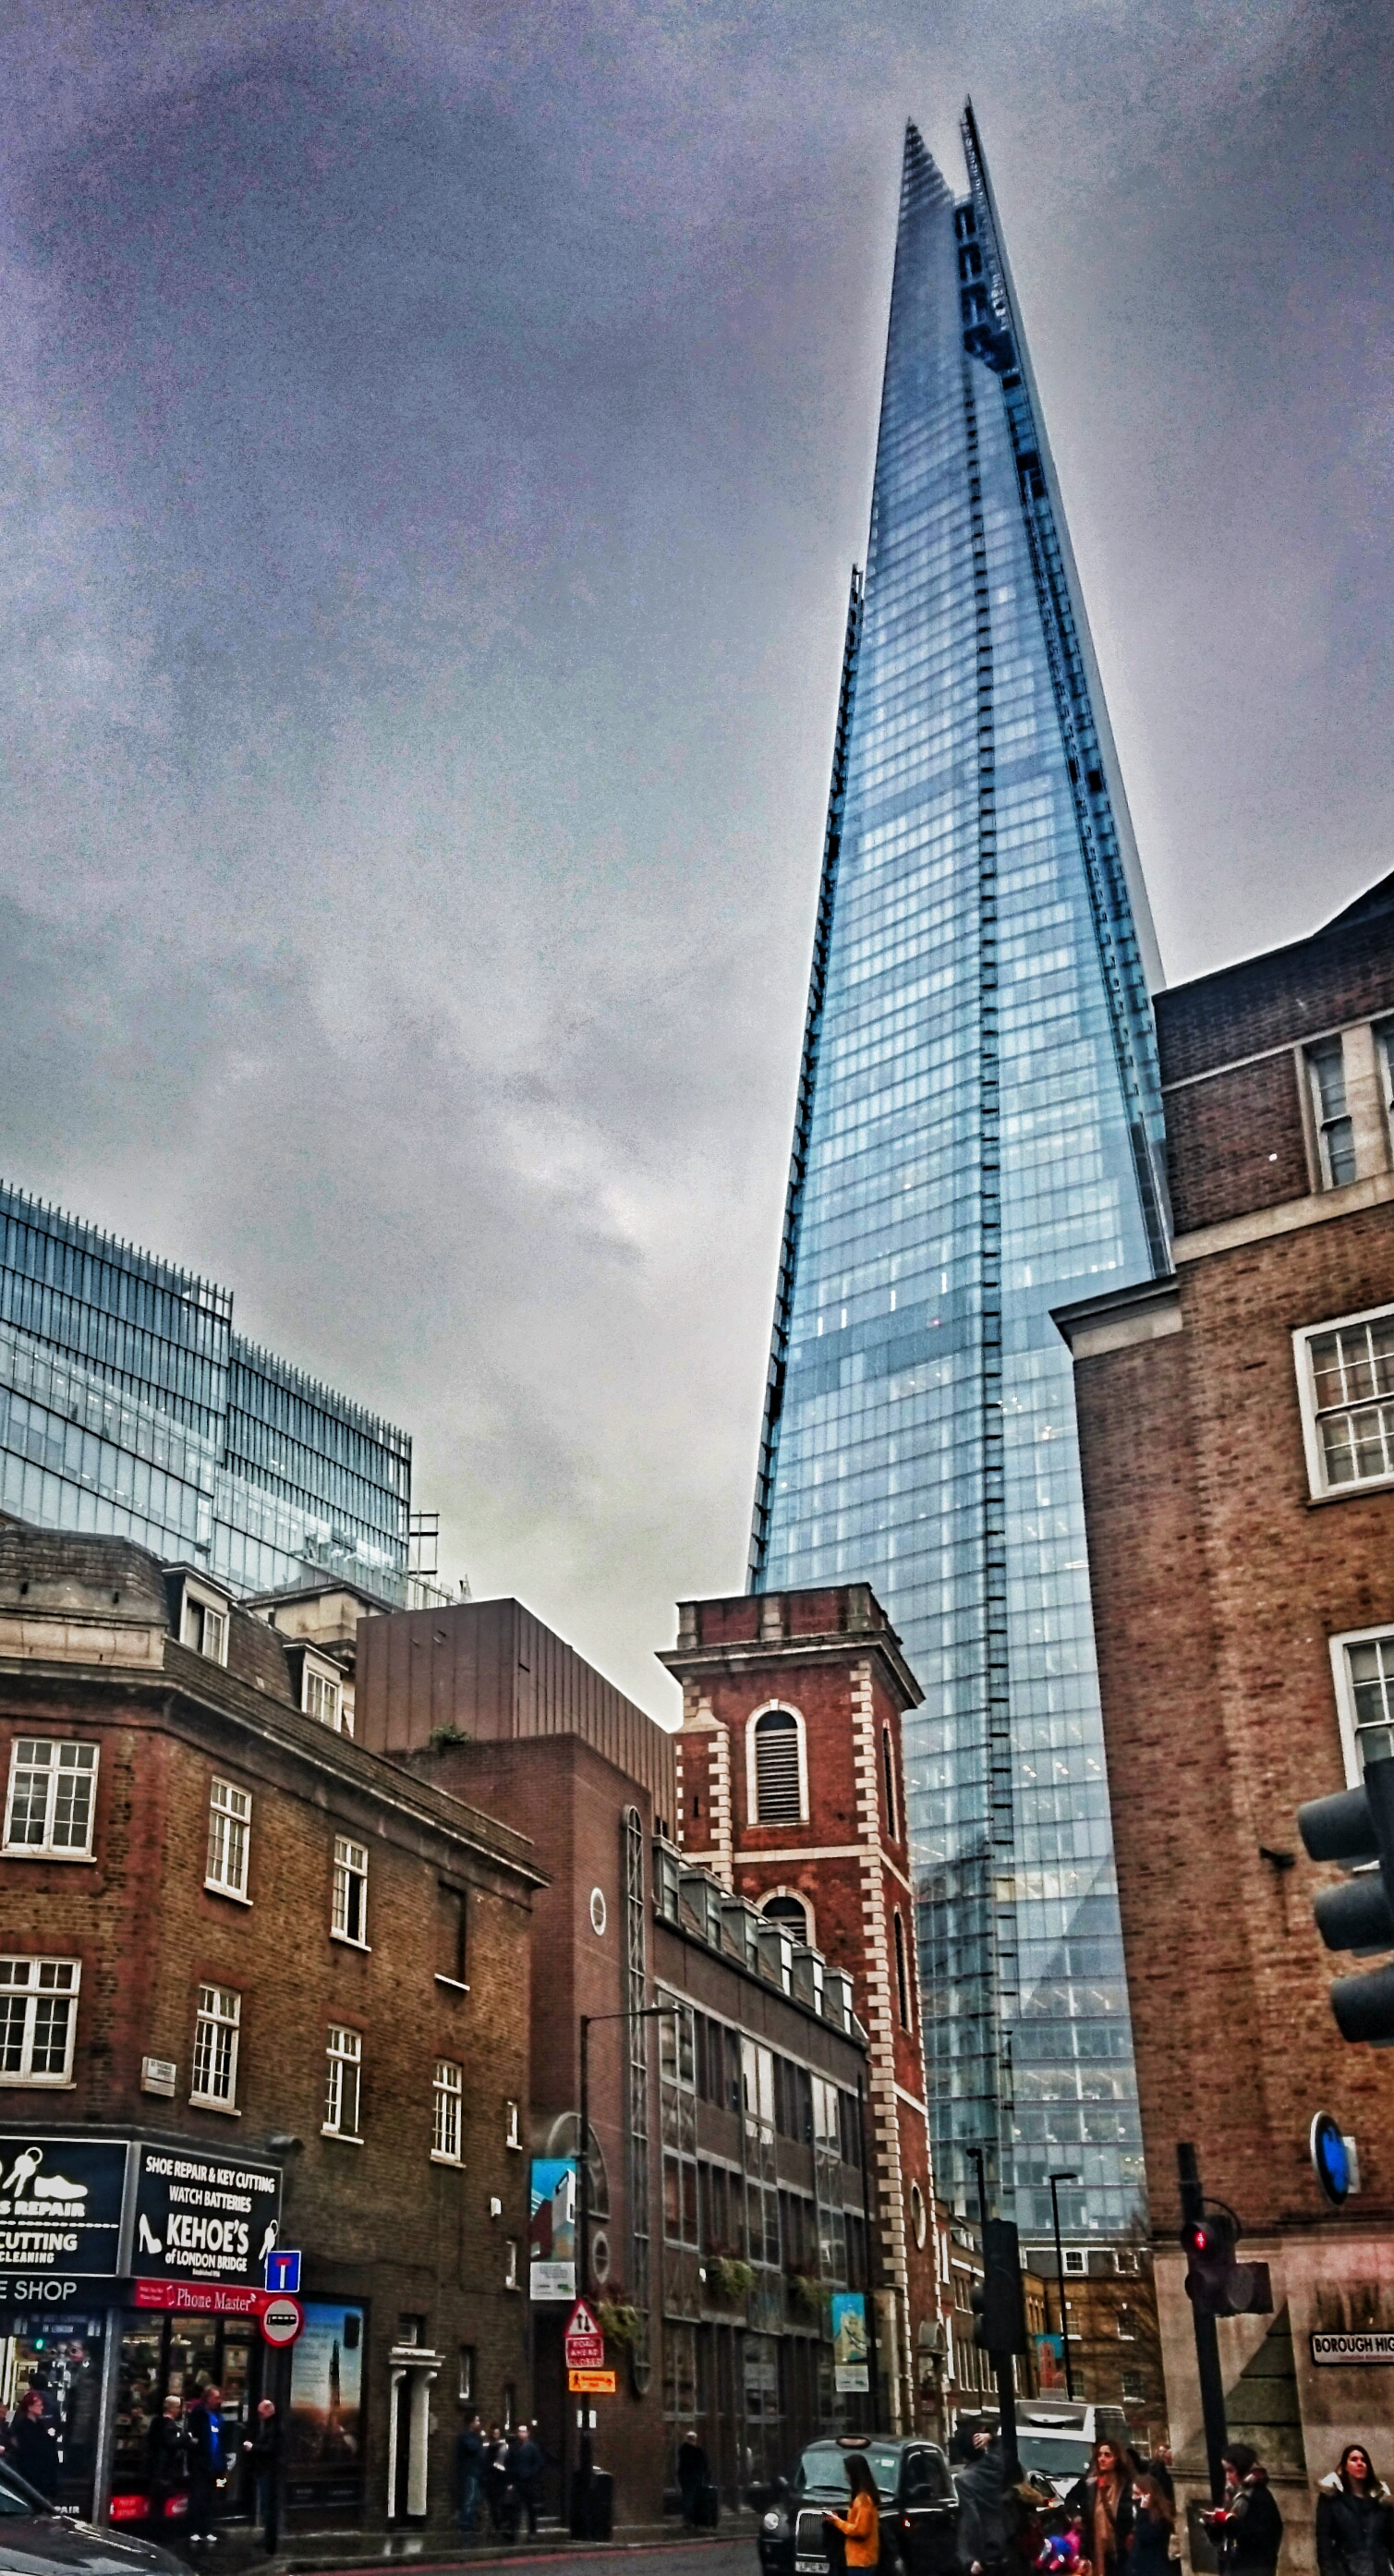 The Shard, London. Foto: Jan Graber, 2016